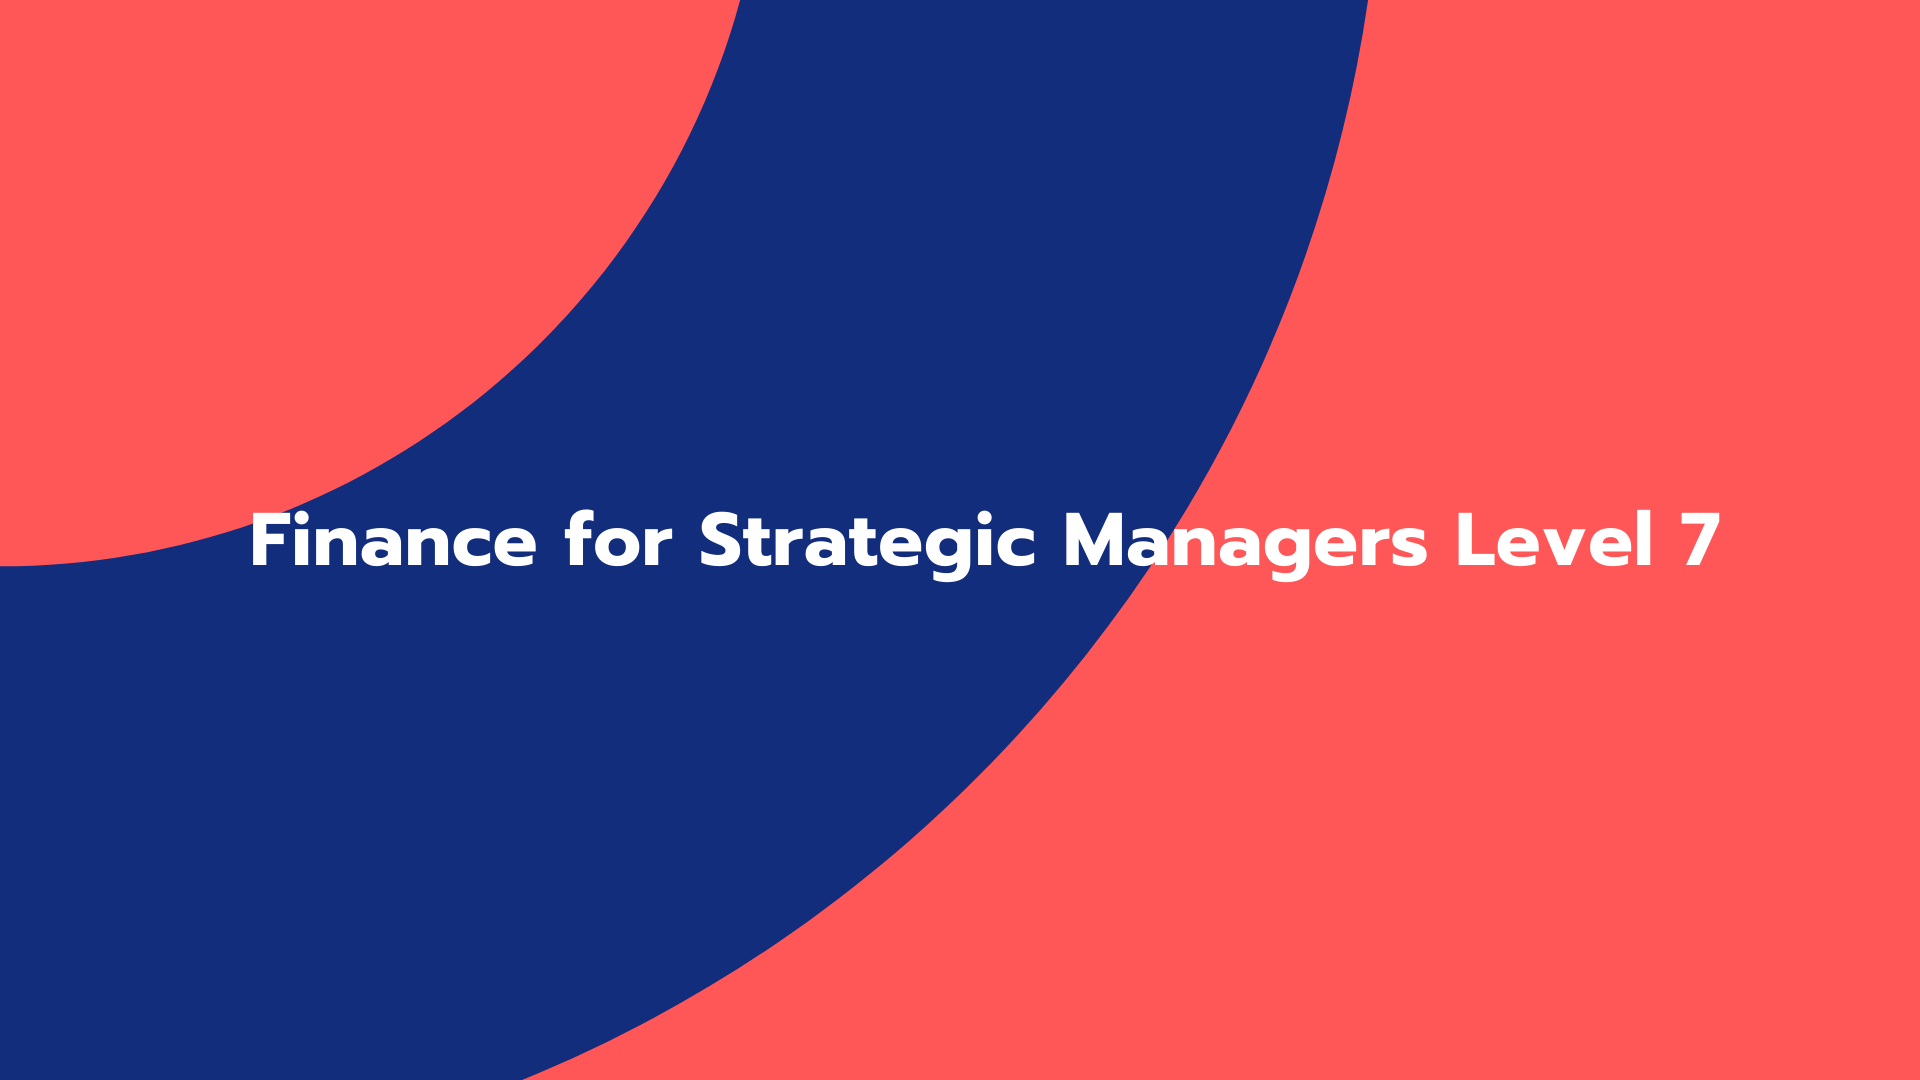 Finance for Strategic Managers Level 7